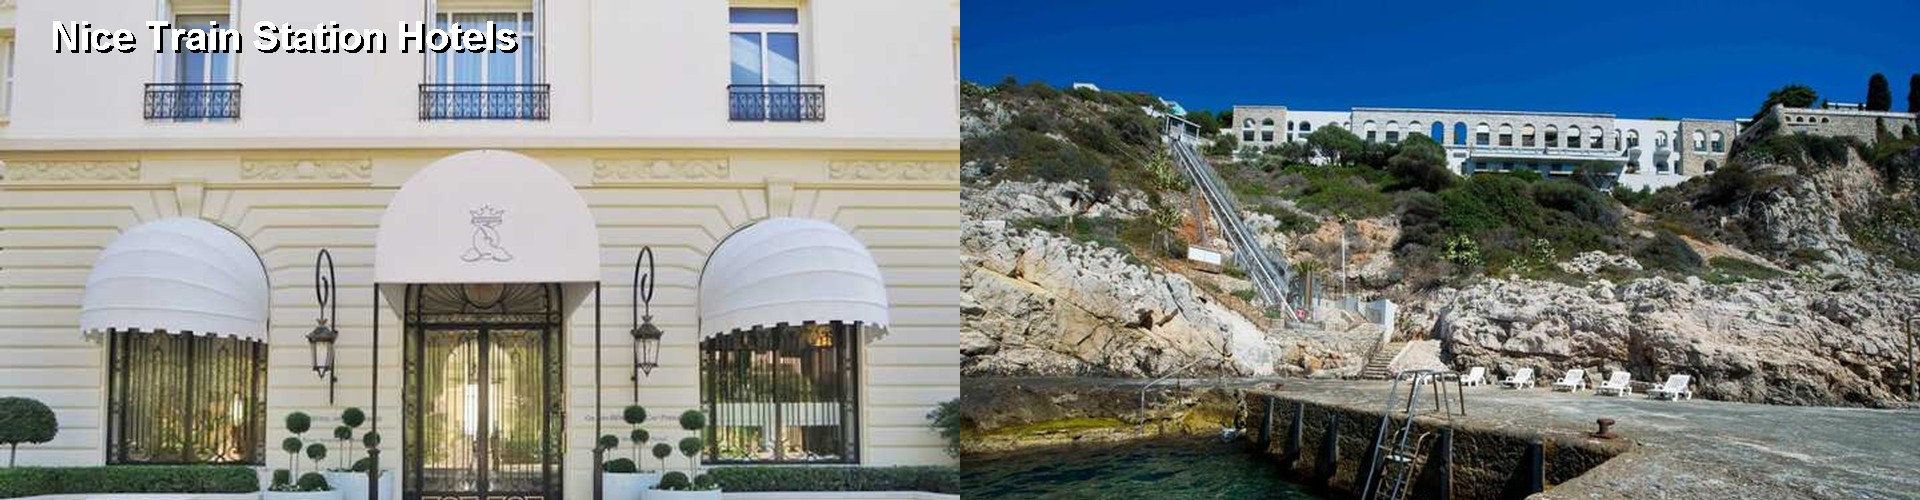 5 Best Hotels near Nice Train Station